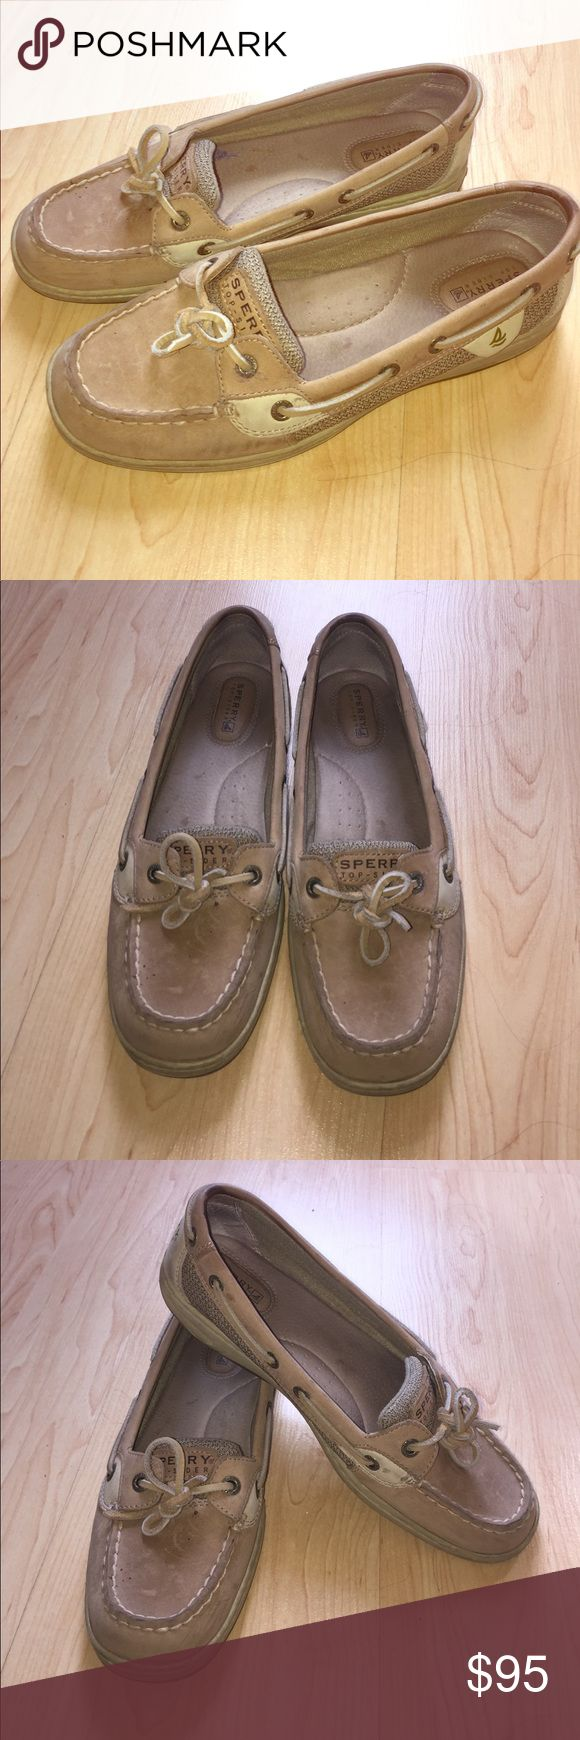 Women's 8.5 Sperry Boatshoes Have been wearing these shoes for less than 2 months, minimal wear and tear, kept up with cleaning and keeping them water damage free! Sperry Top-Sider Shoes Sandals